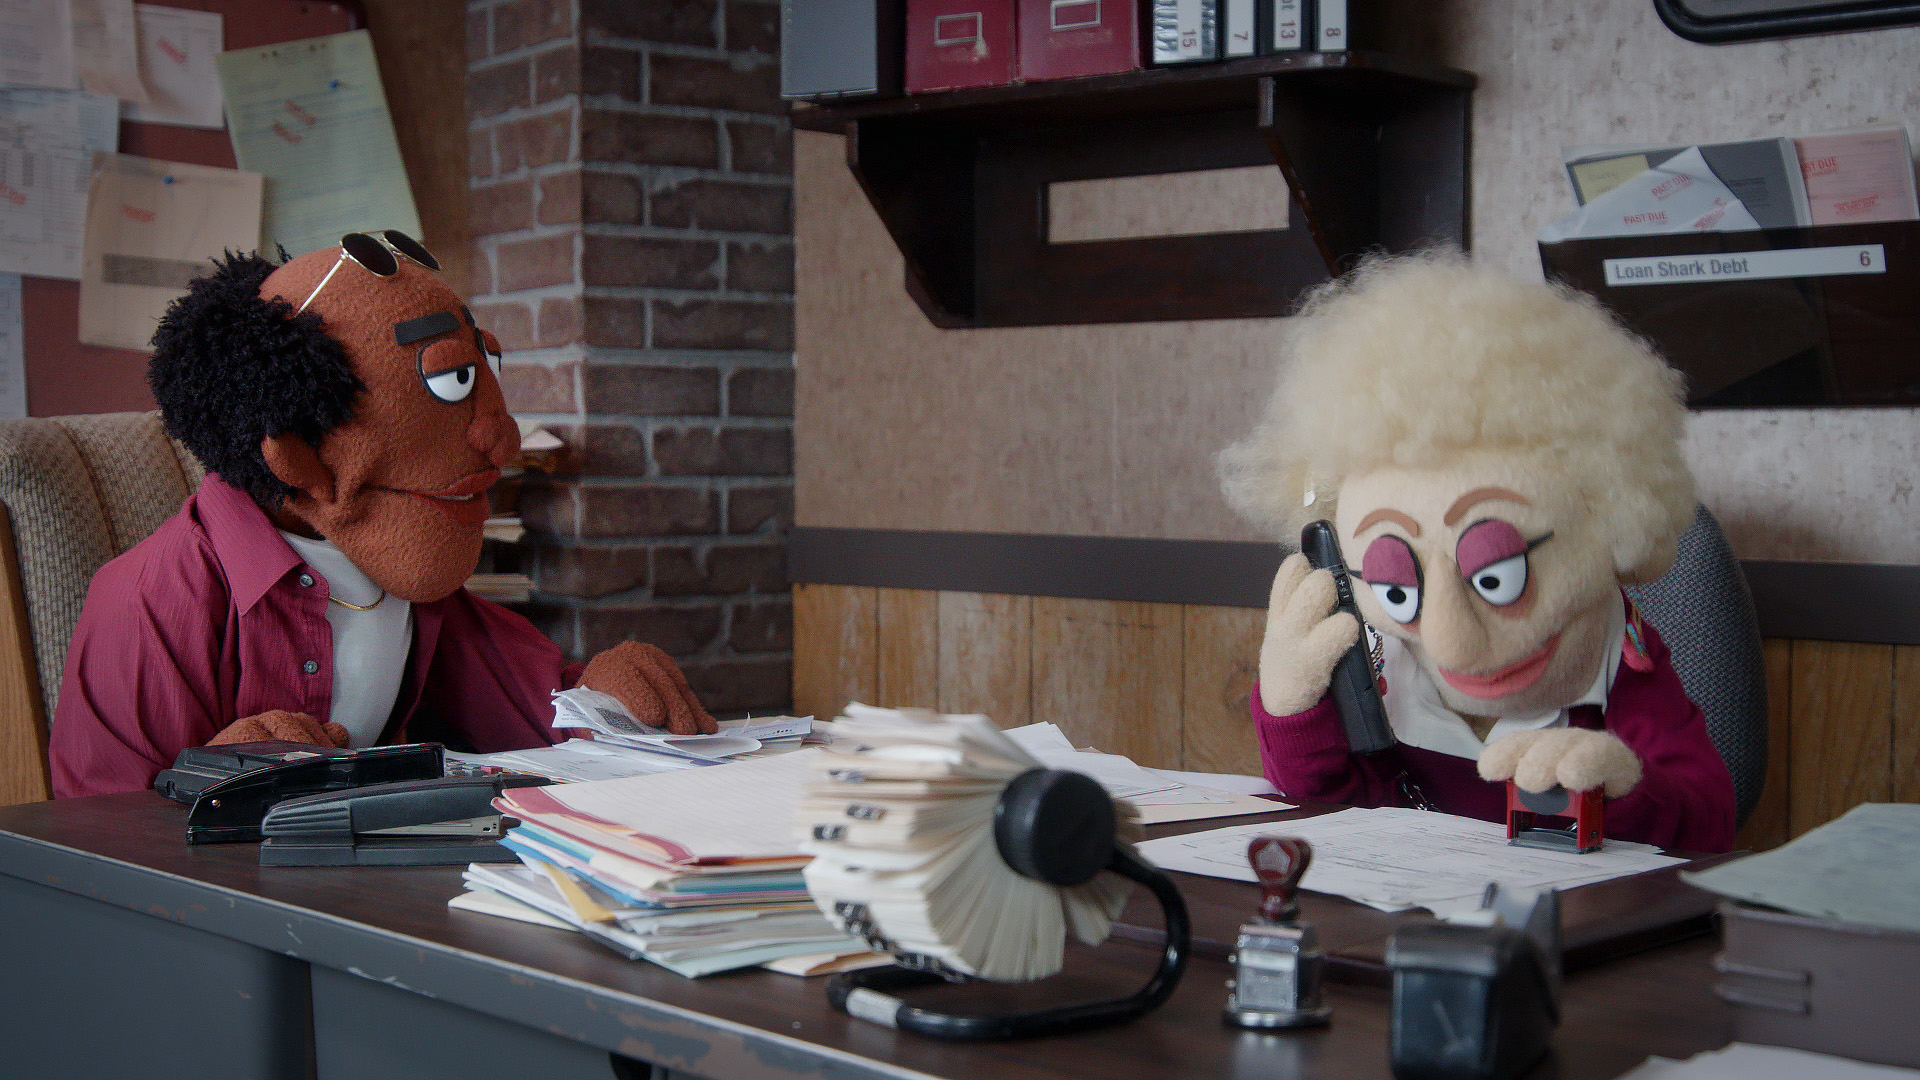 A female debt collector answers a prank call in a scene directed by Todd Bishop for Comedy Central's Crank Yankers